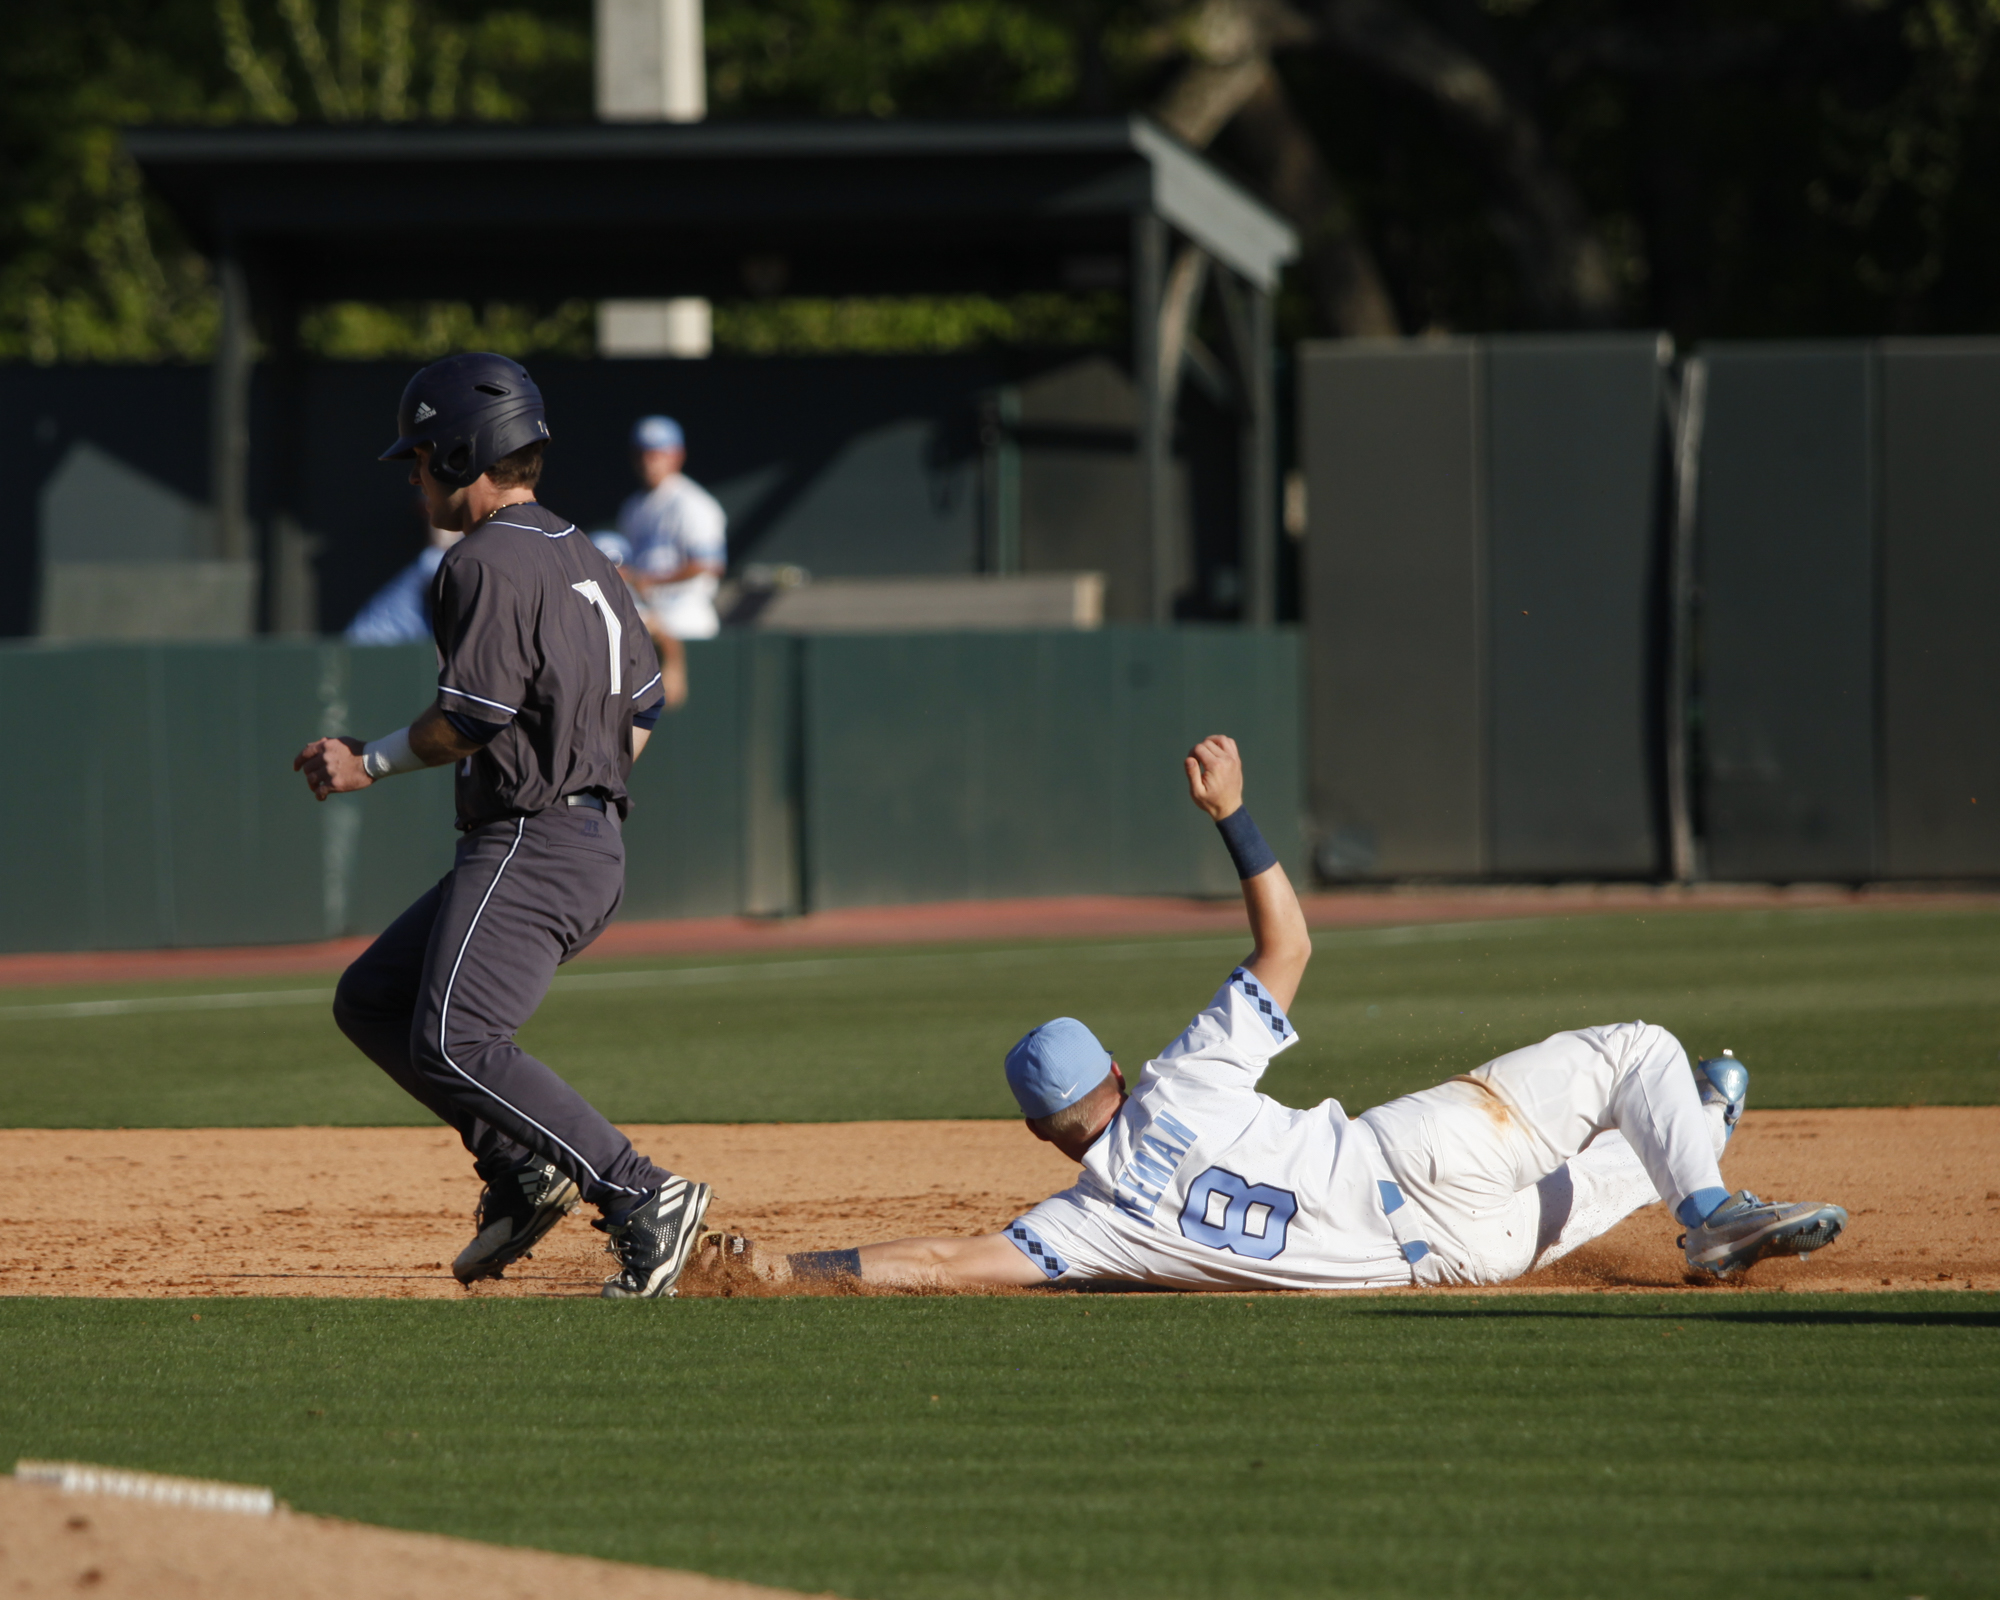 UNC shortstop, Ike Freeman, dives to get the out during a pickle play between second and third base at Boshamer Stadium.